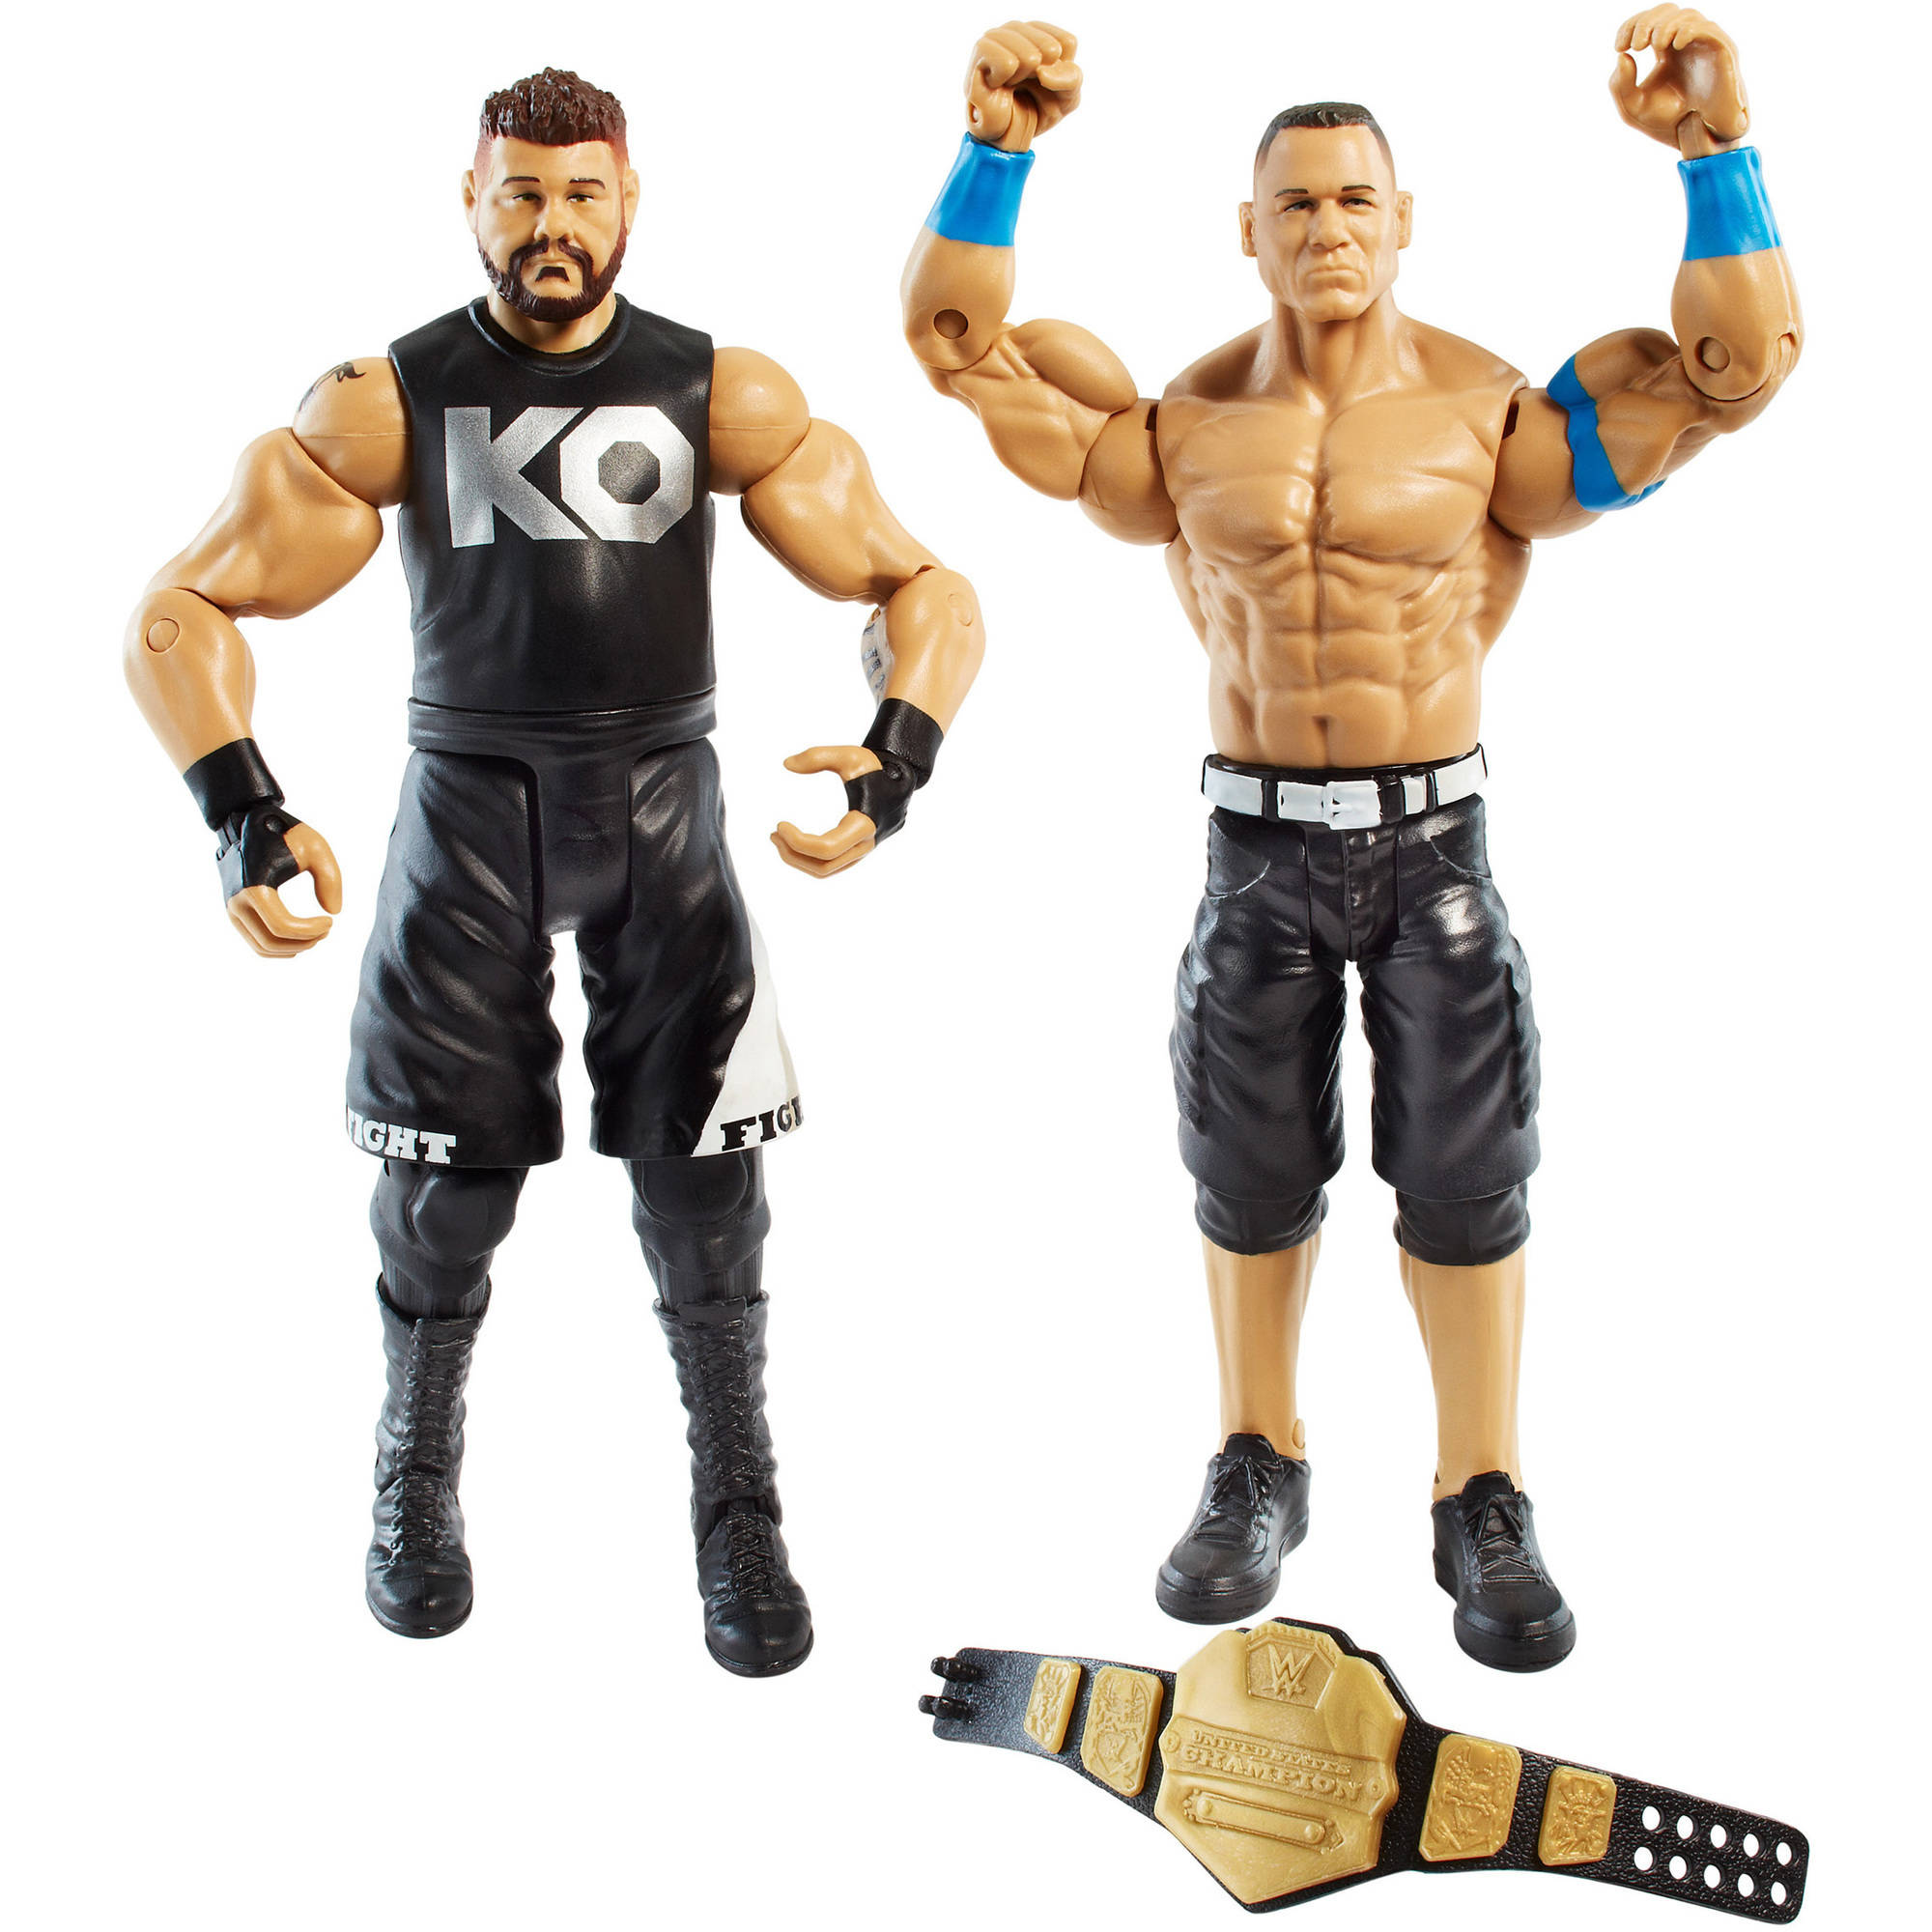 WWE 2-Pack John Cena and Kevin Owens Figures